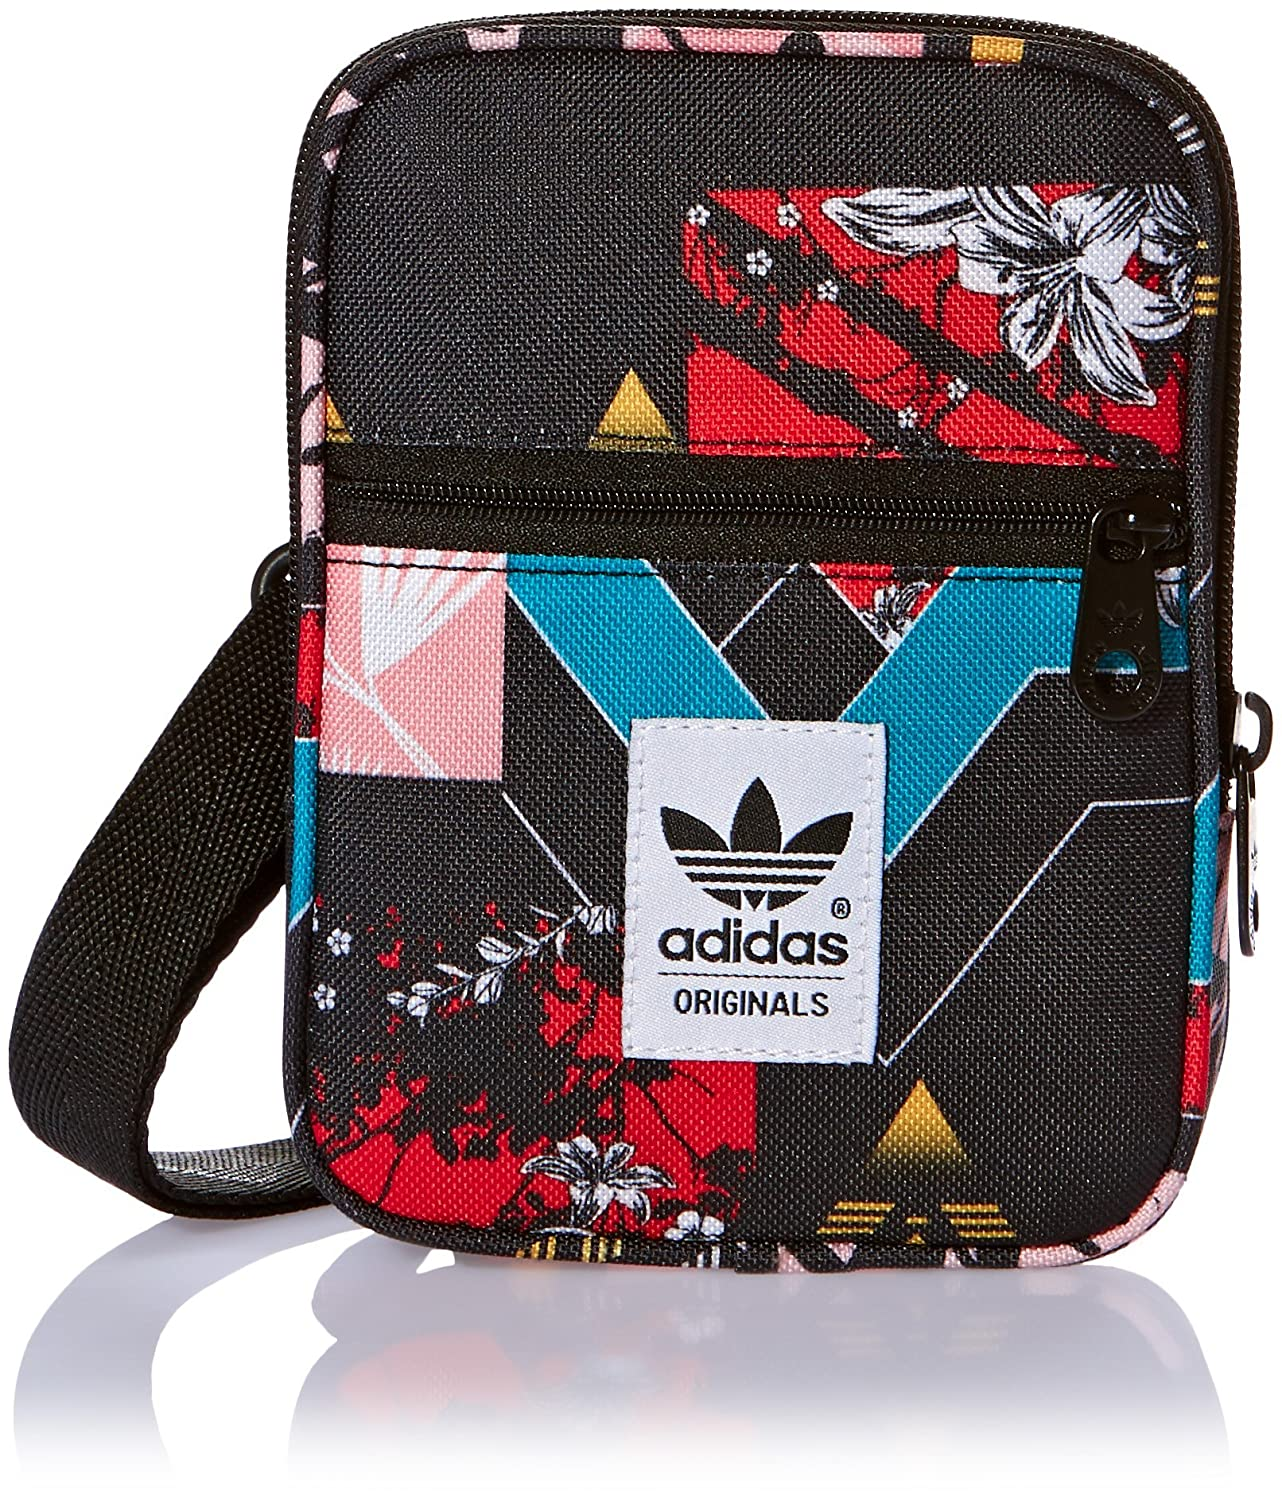 Adidas Originals AC Mini Festival Bag Small Shoulder Bag Floral 13 x 17 x 3 cm 0.6 Liter AJ7038